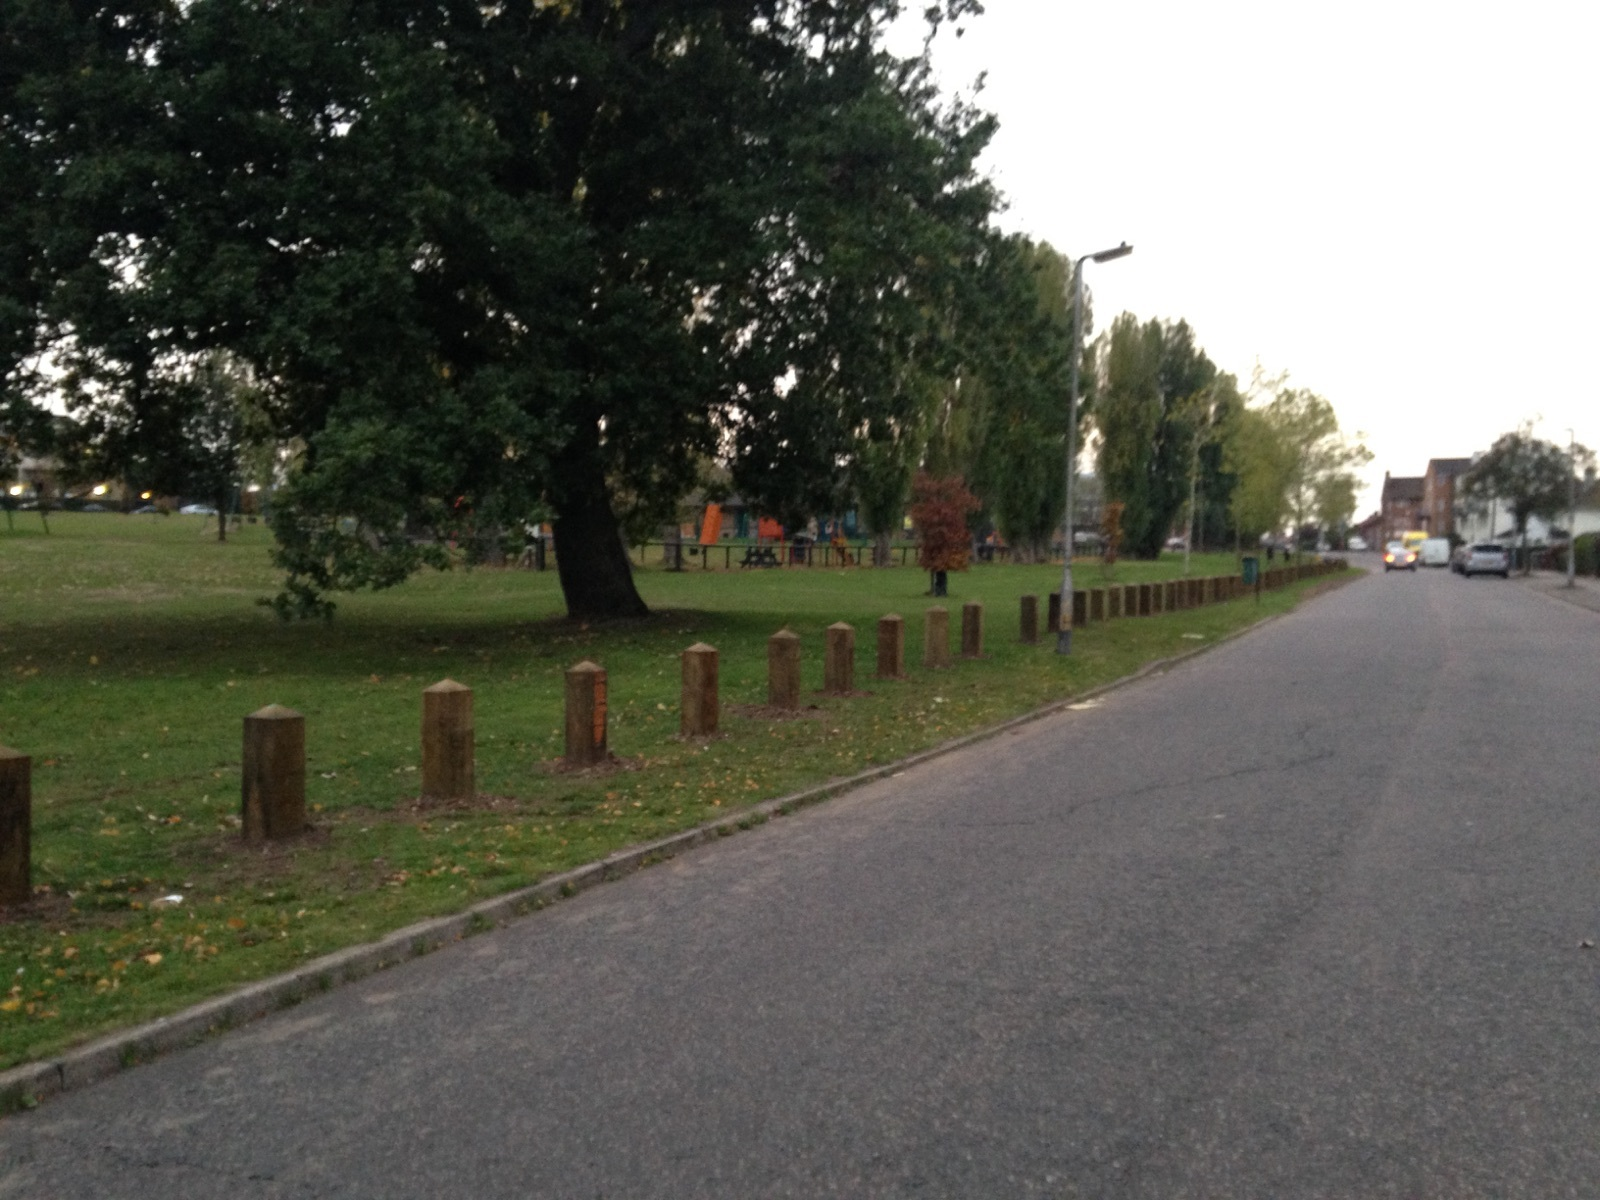 Posts have been installed along Arundel Drive